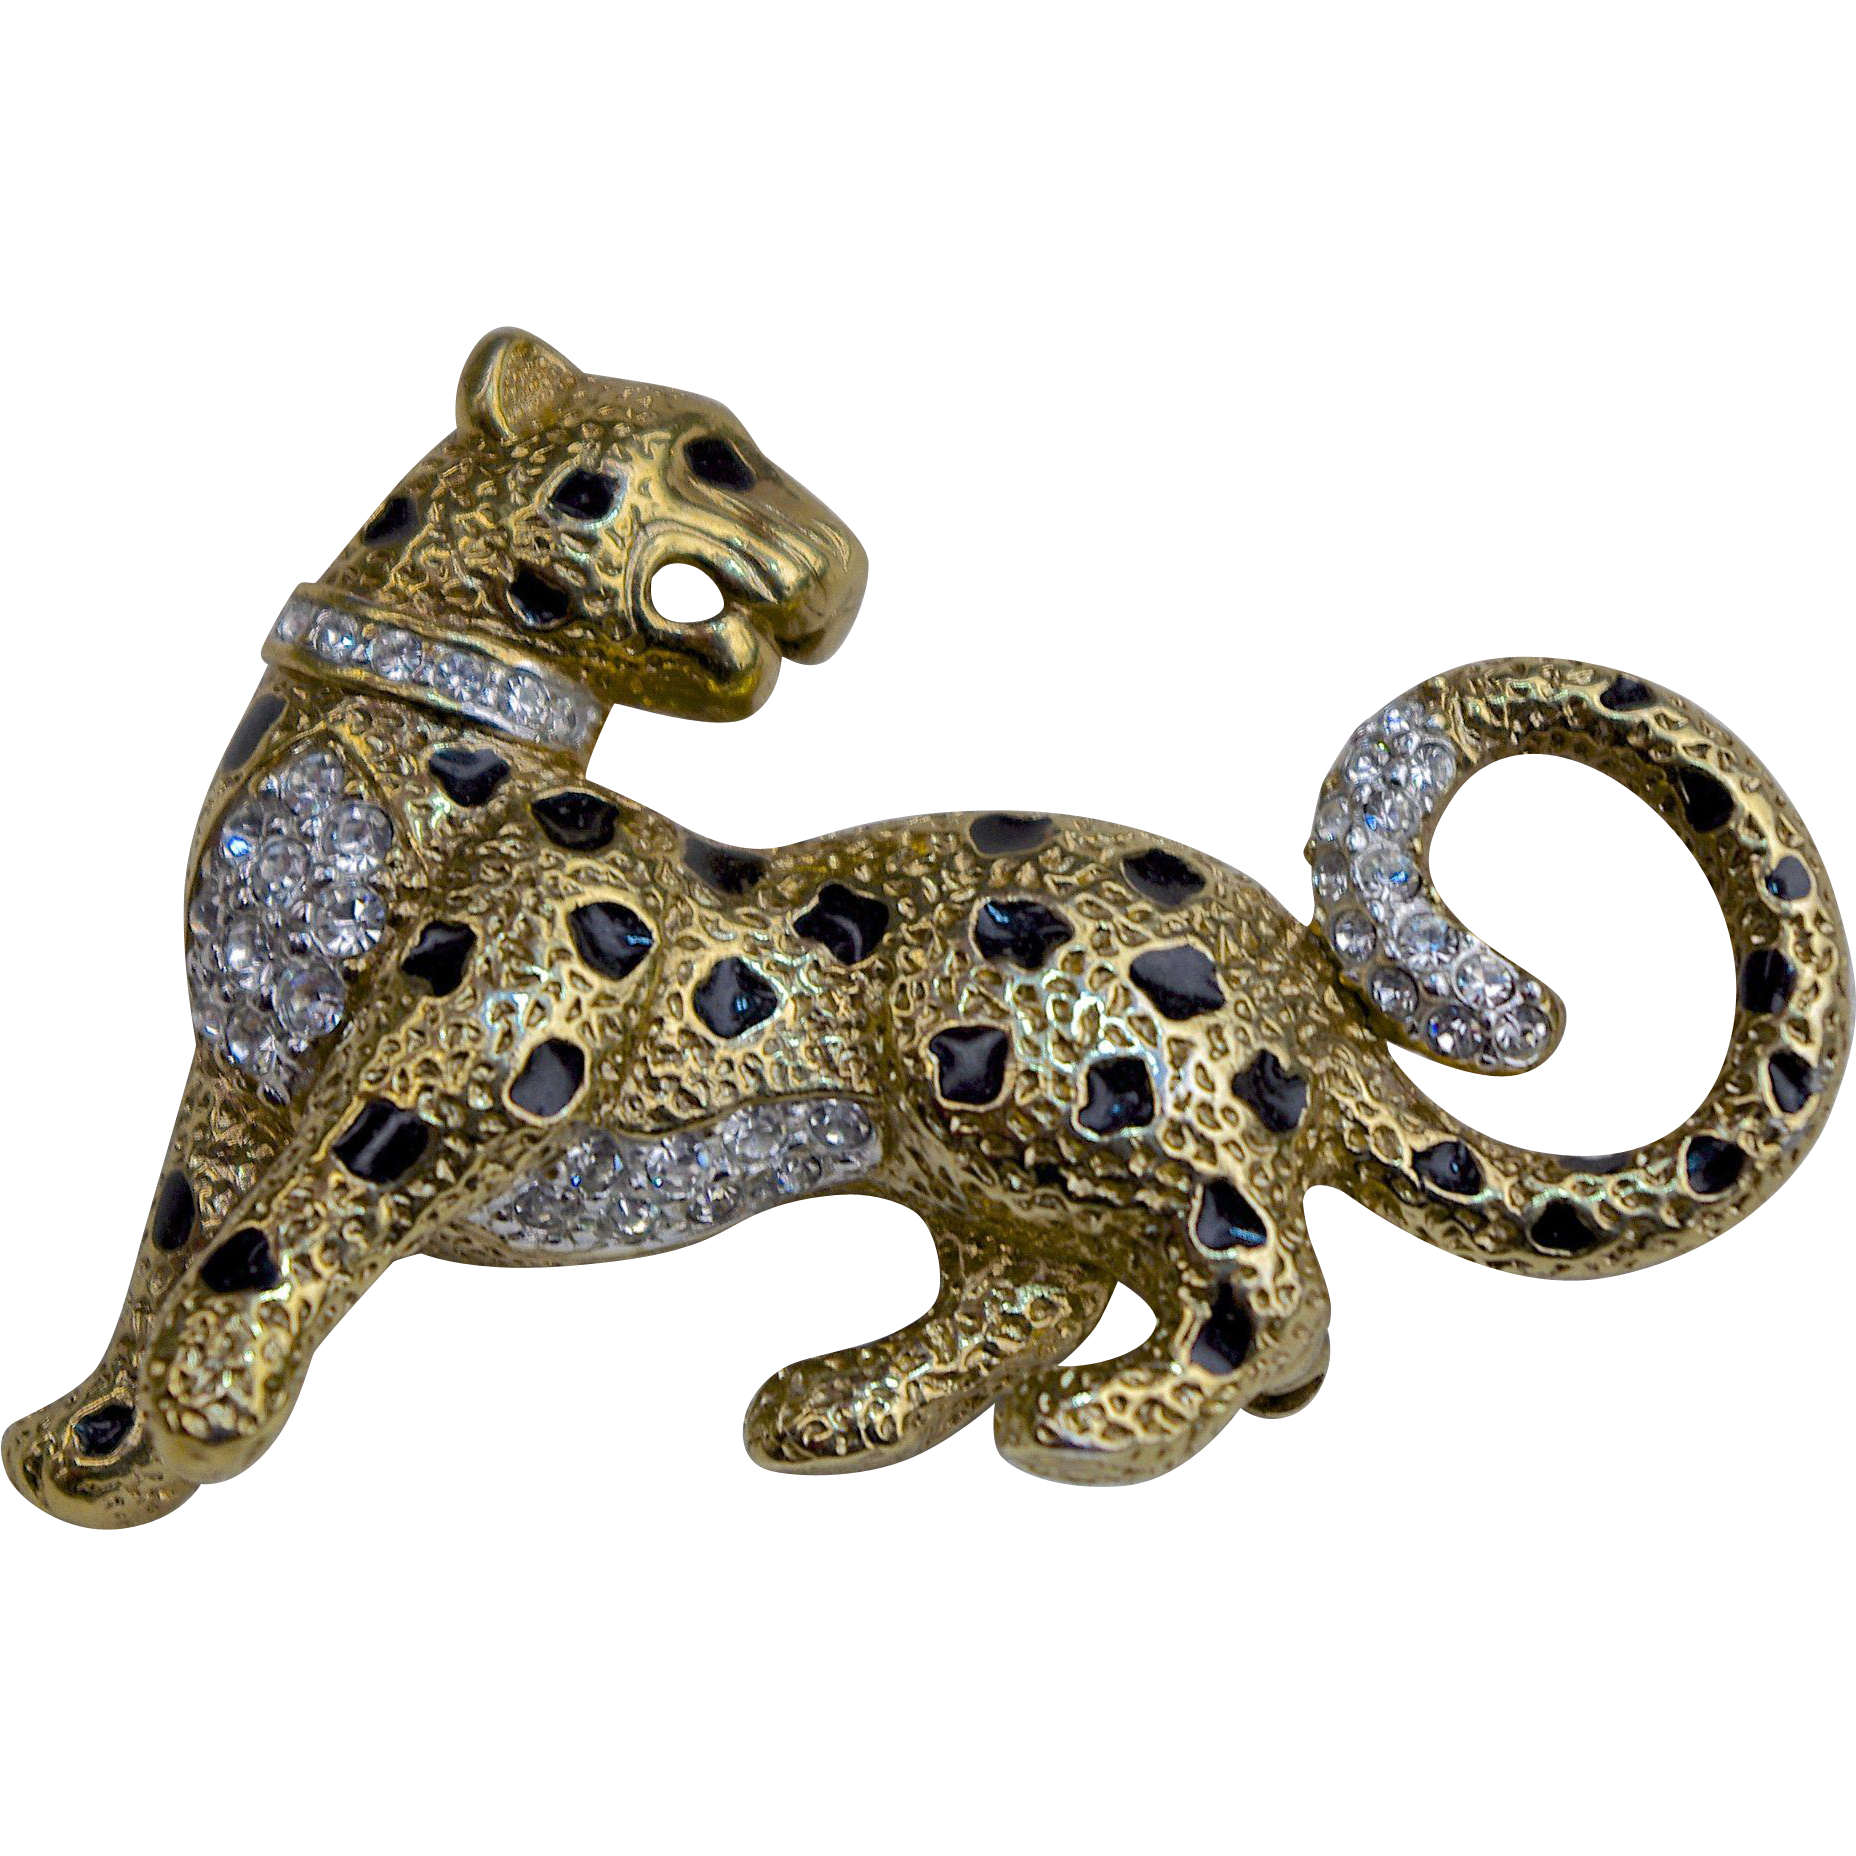 A Vintage Leopard Brooch Pin Of Gilt Enamel Swarovski Crystals From The Attwood Sawyer Ss Windsor Collection